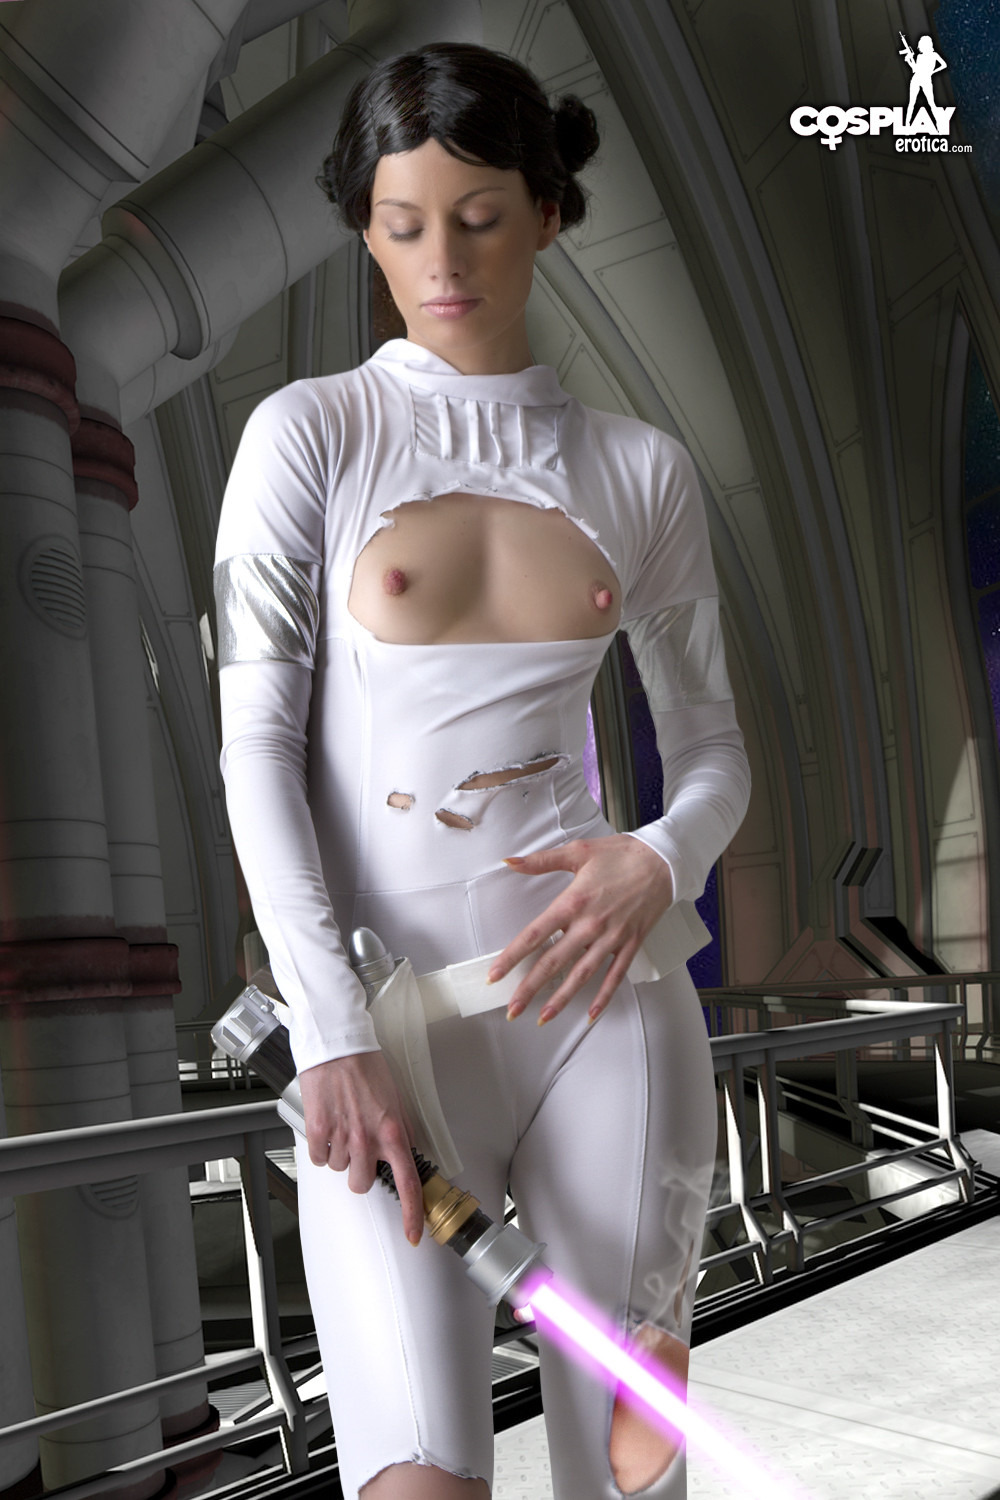 Pictures of star war girls naked xxx clip